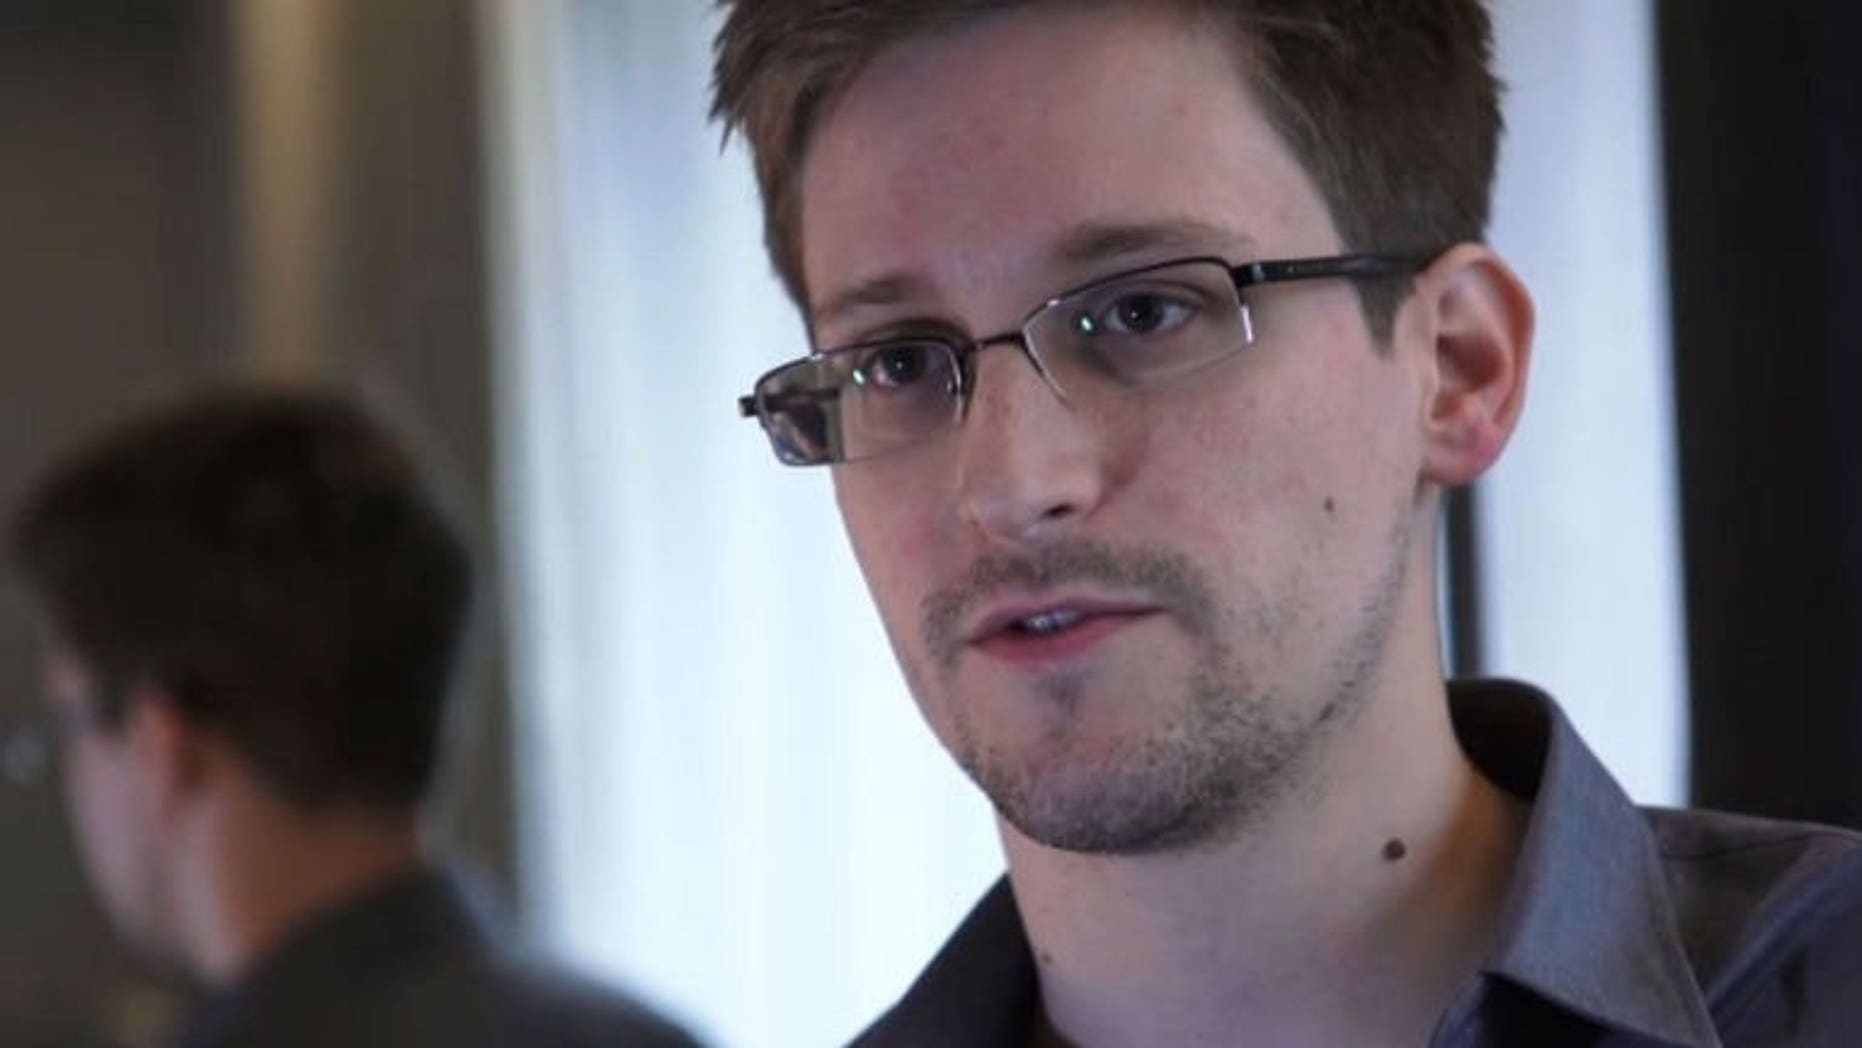 Edward Snowden, a former contractor for the National Security Agency, speaks during an interview with The Guardian newspaper in Hong Kong, June 6, 2013. Russian President Vladimir Putin and US President Barack Obama have ordered the chiefs of their respective security agencies to find a way out of the impasse caused by Snowden's stay in a Moscow airport, a senior official said on Monday.